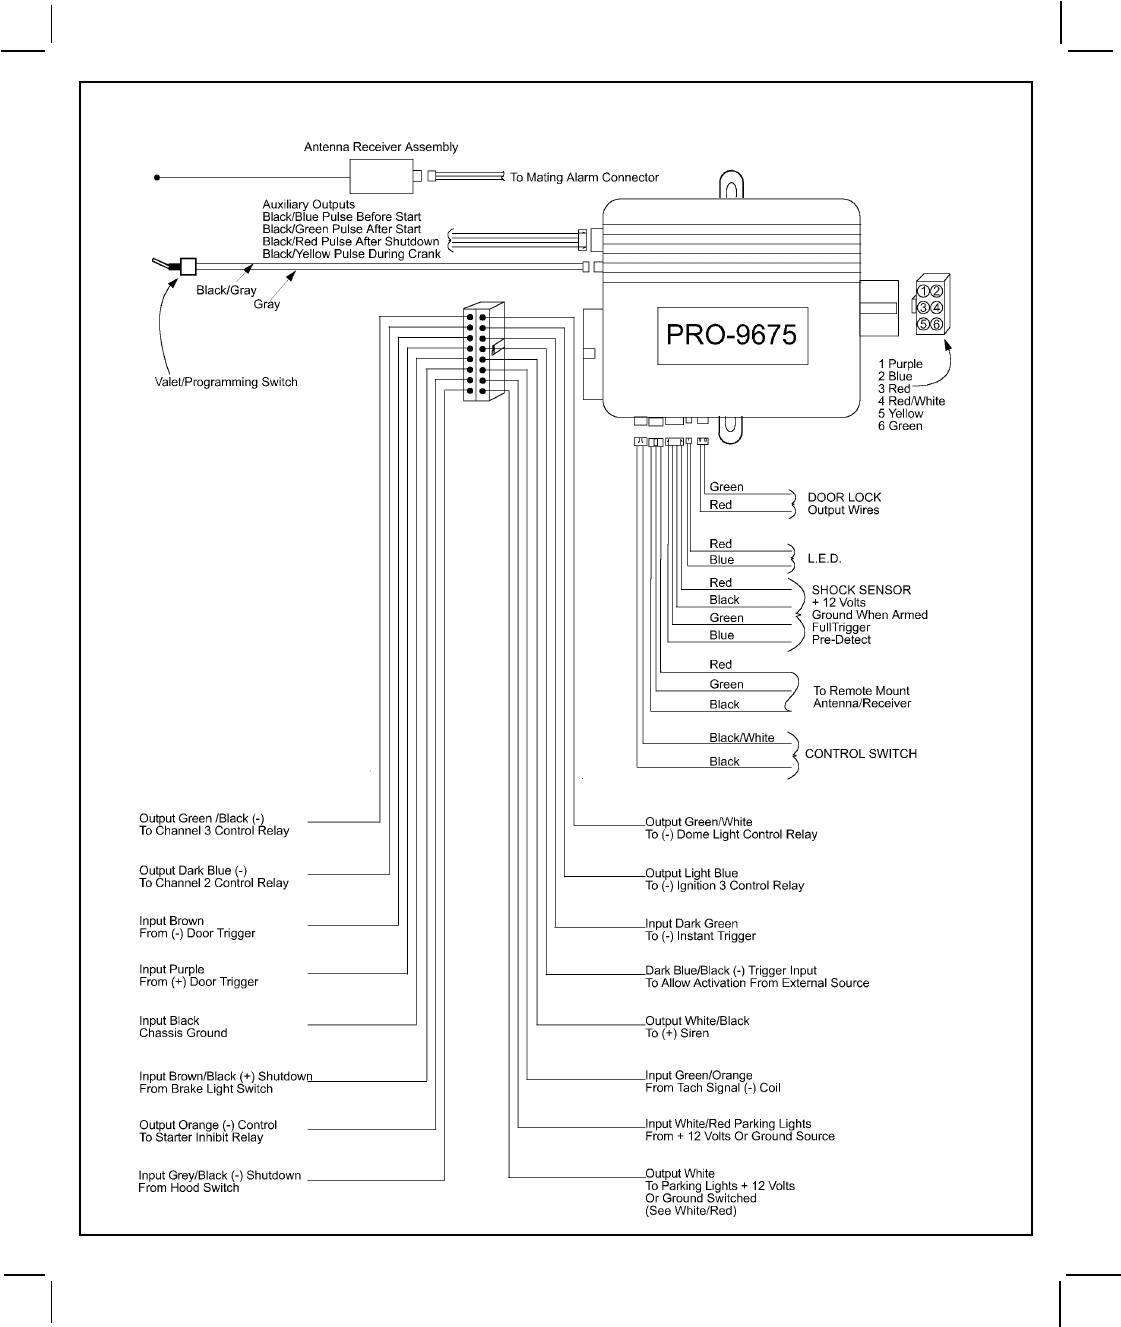 63de61ef f929 4813 ac08 919f46a5cd26 bg16 page 22 of audiovox automobile alarm pro 9675ft user guide audiovox car alarm wiring diagram at edmiracle.co